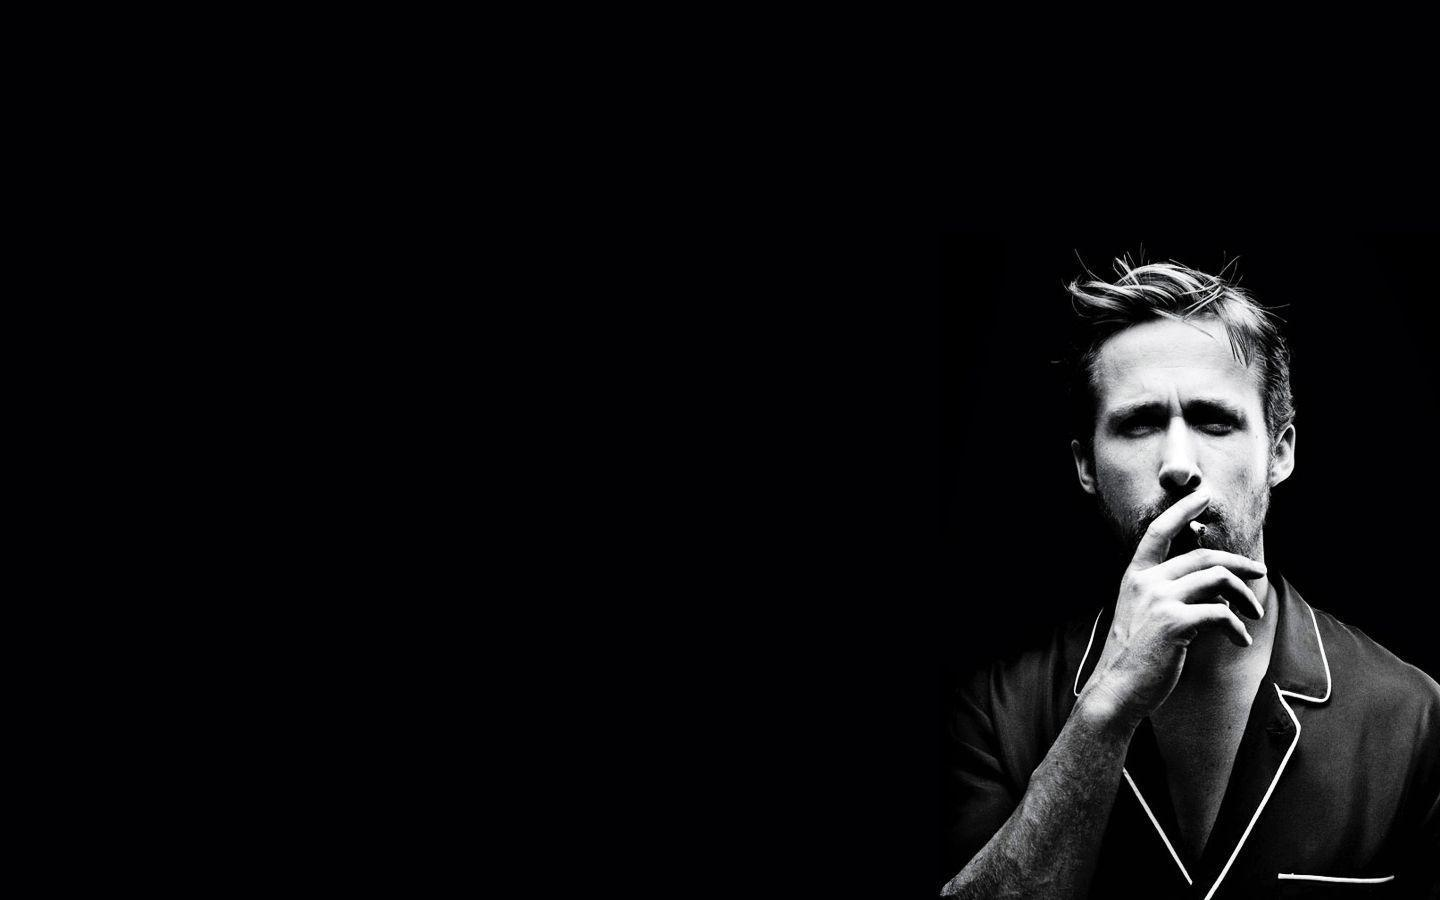 Image For > Ryan Gosling Black And White Wallpapers